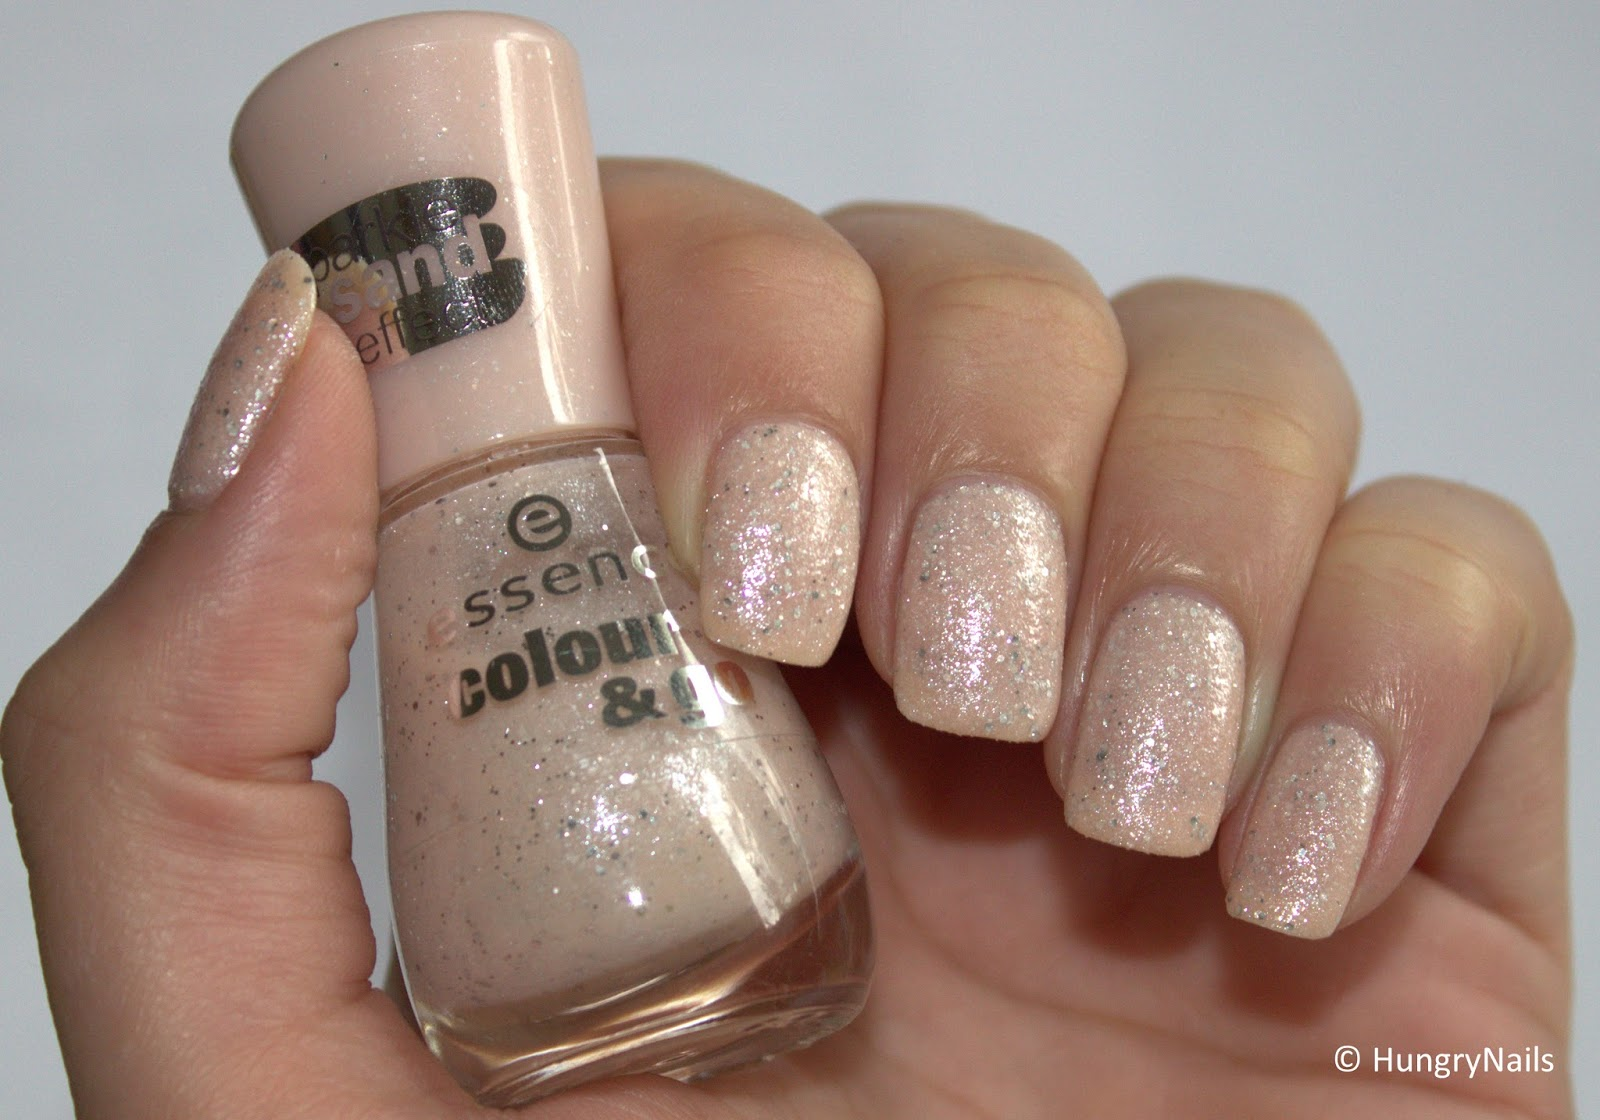 DIY Hard Nails Swatch Gallery  Chickettes SoakOff Gel